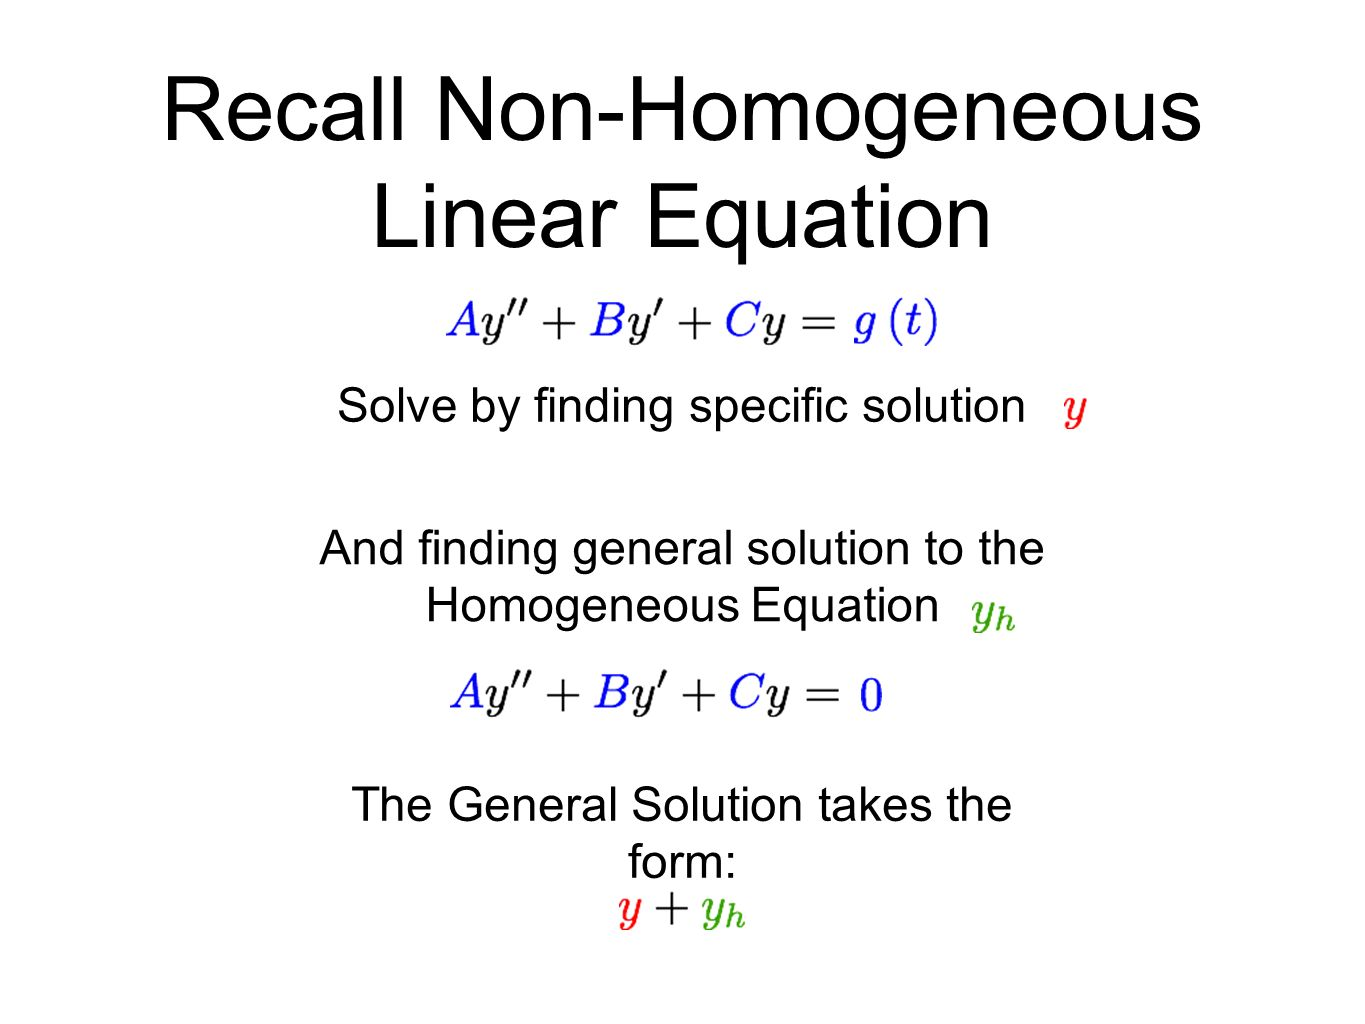 Variation of Parameters Method for Non-Homogeneous Equations